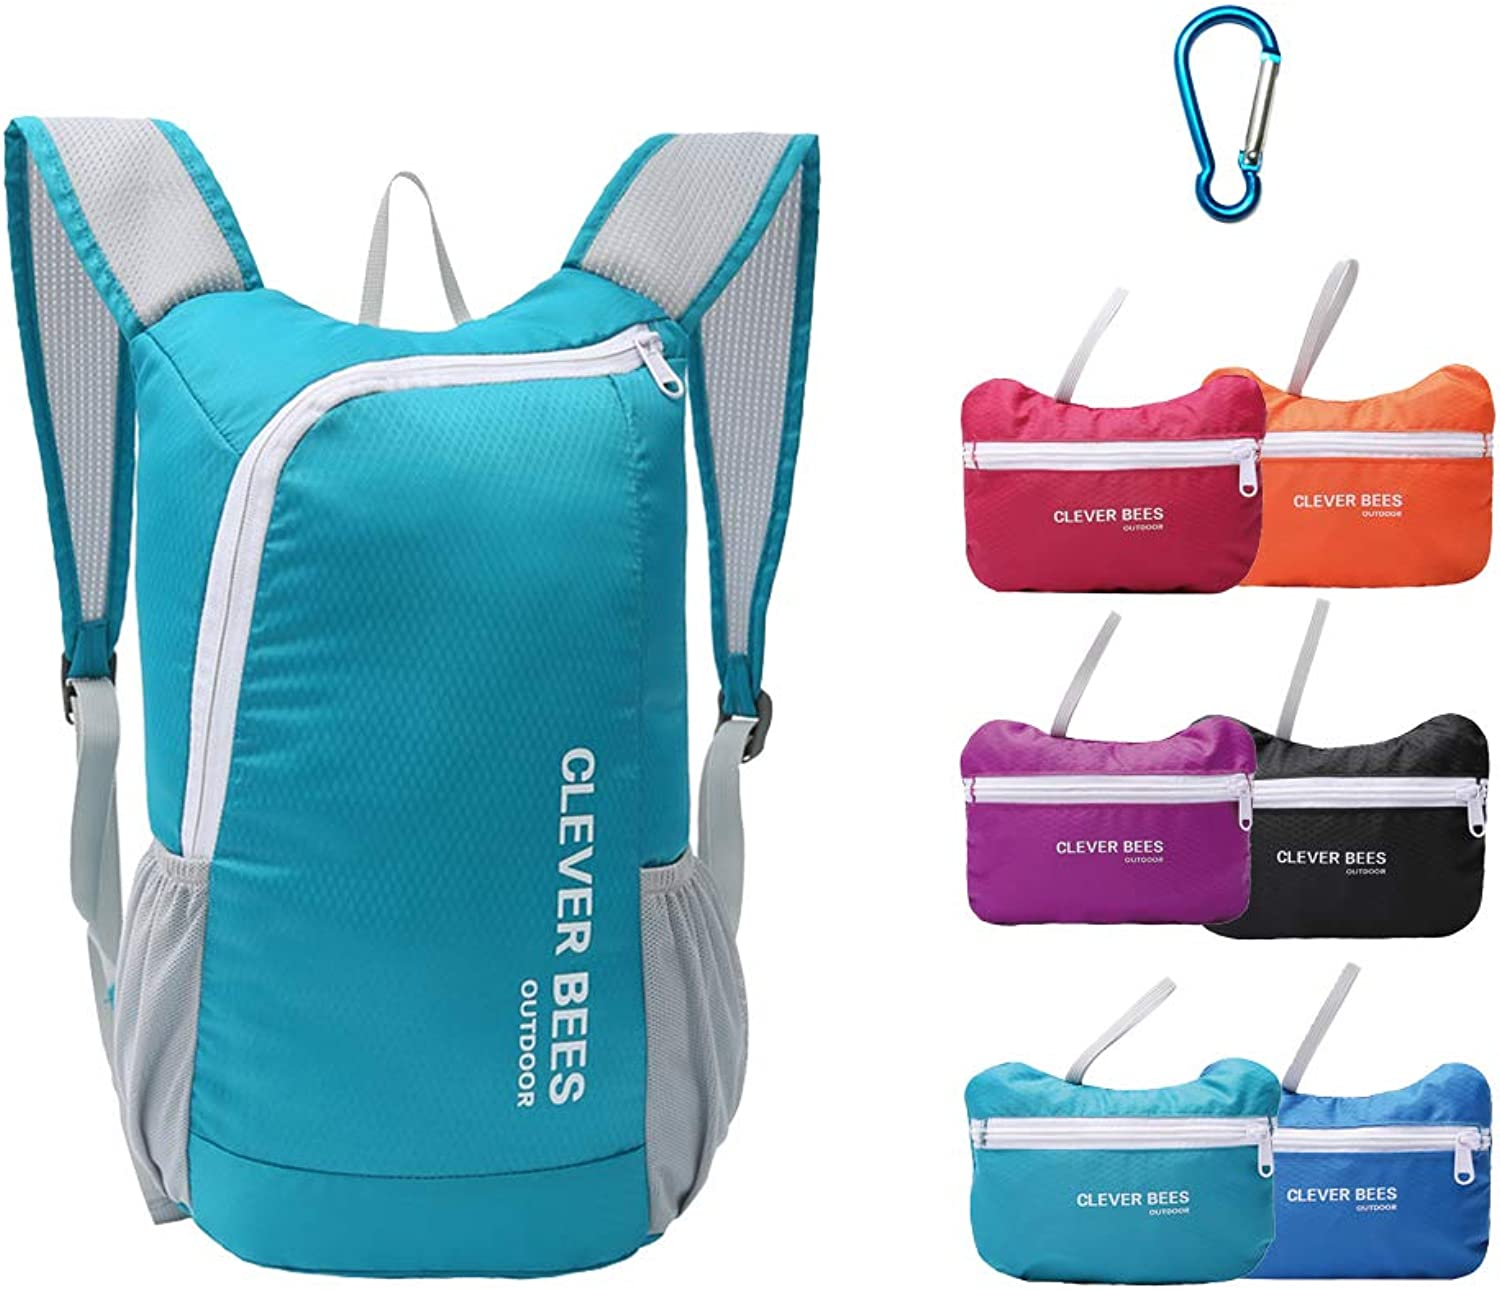 20L Ultra Lightweight Foldable Backpack Folding Backpack Outdoor Waterproof Backpack Hiking Daypack for Travel Champing Hiking School Sports